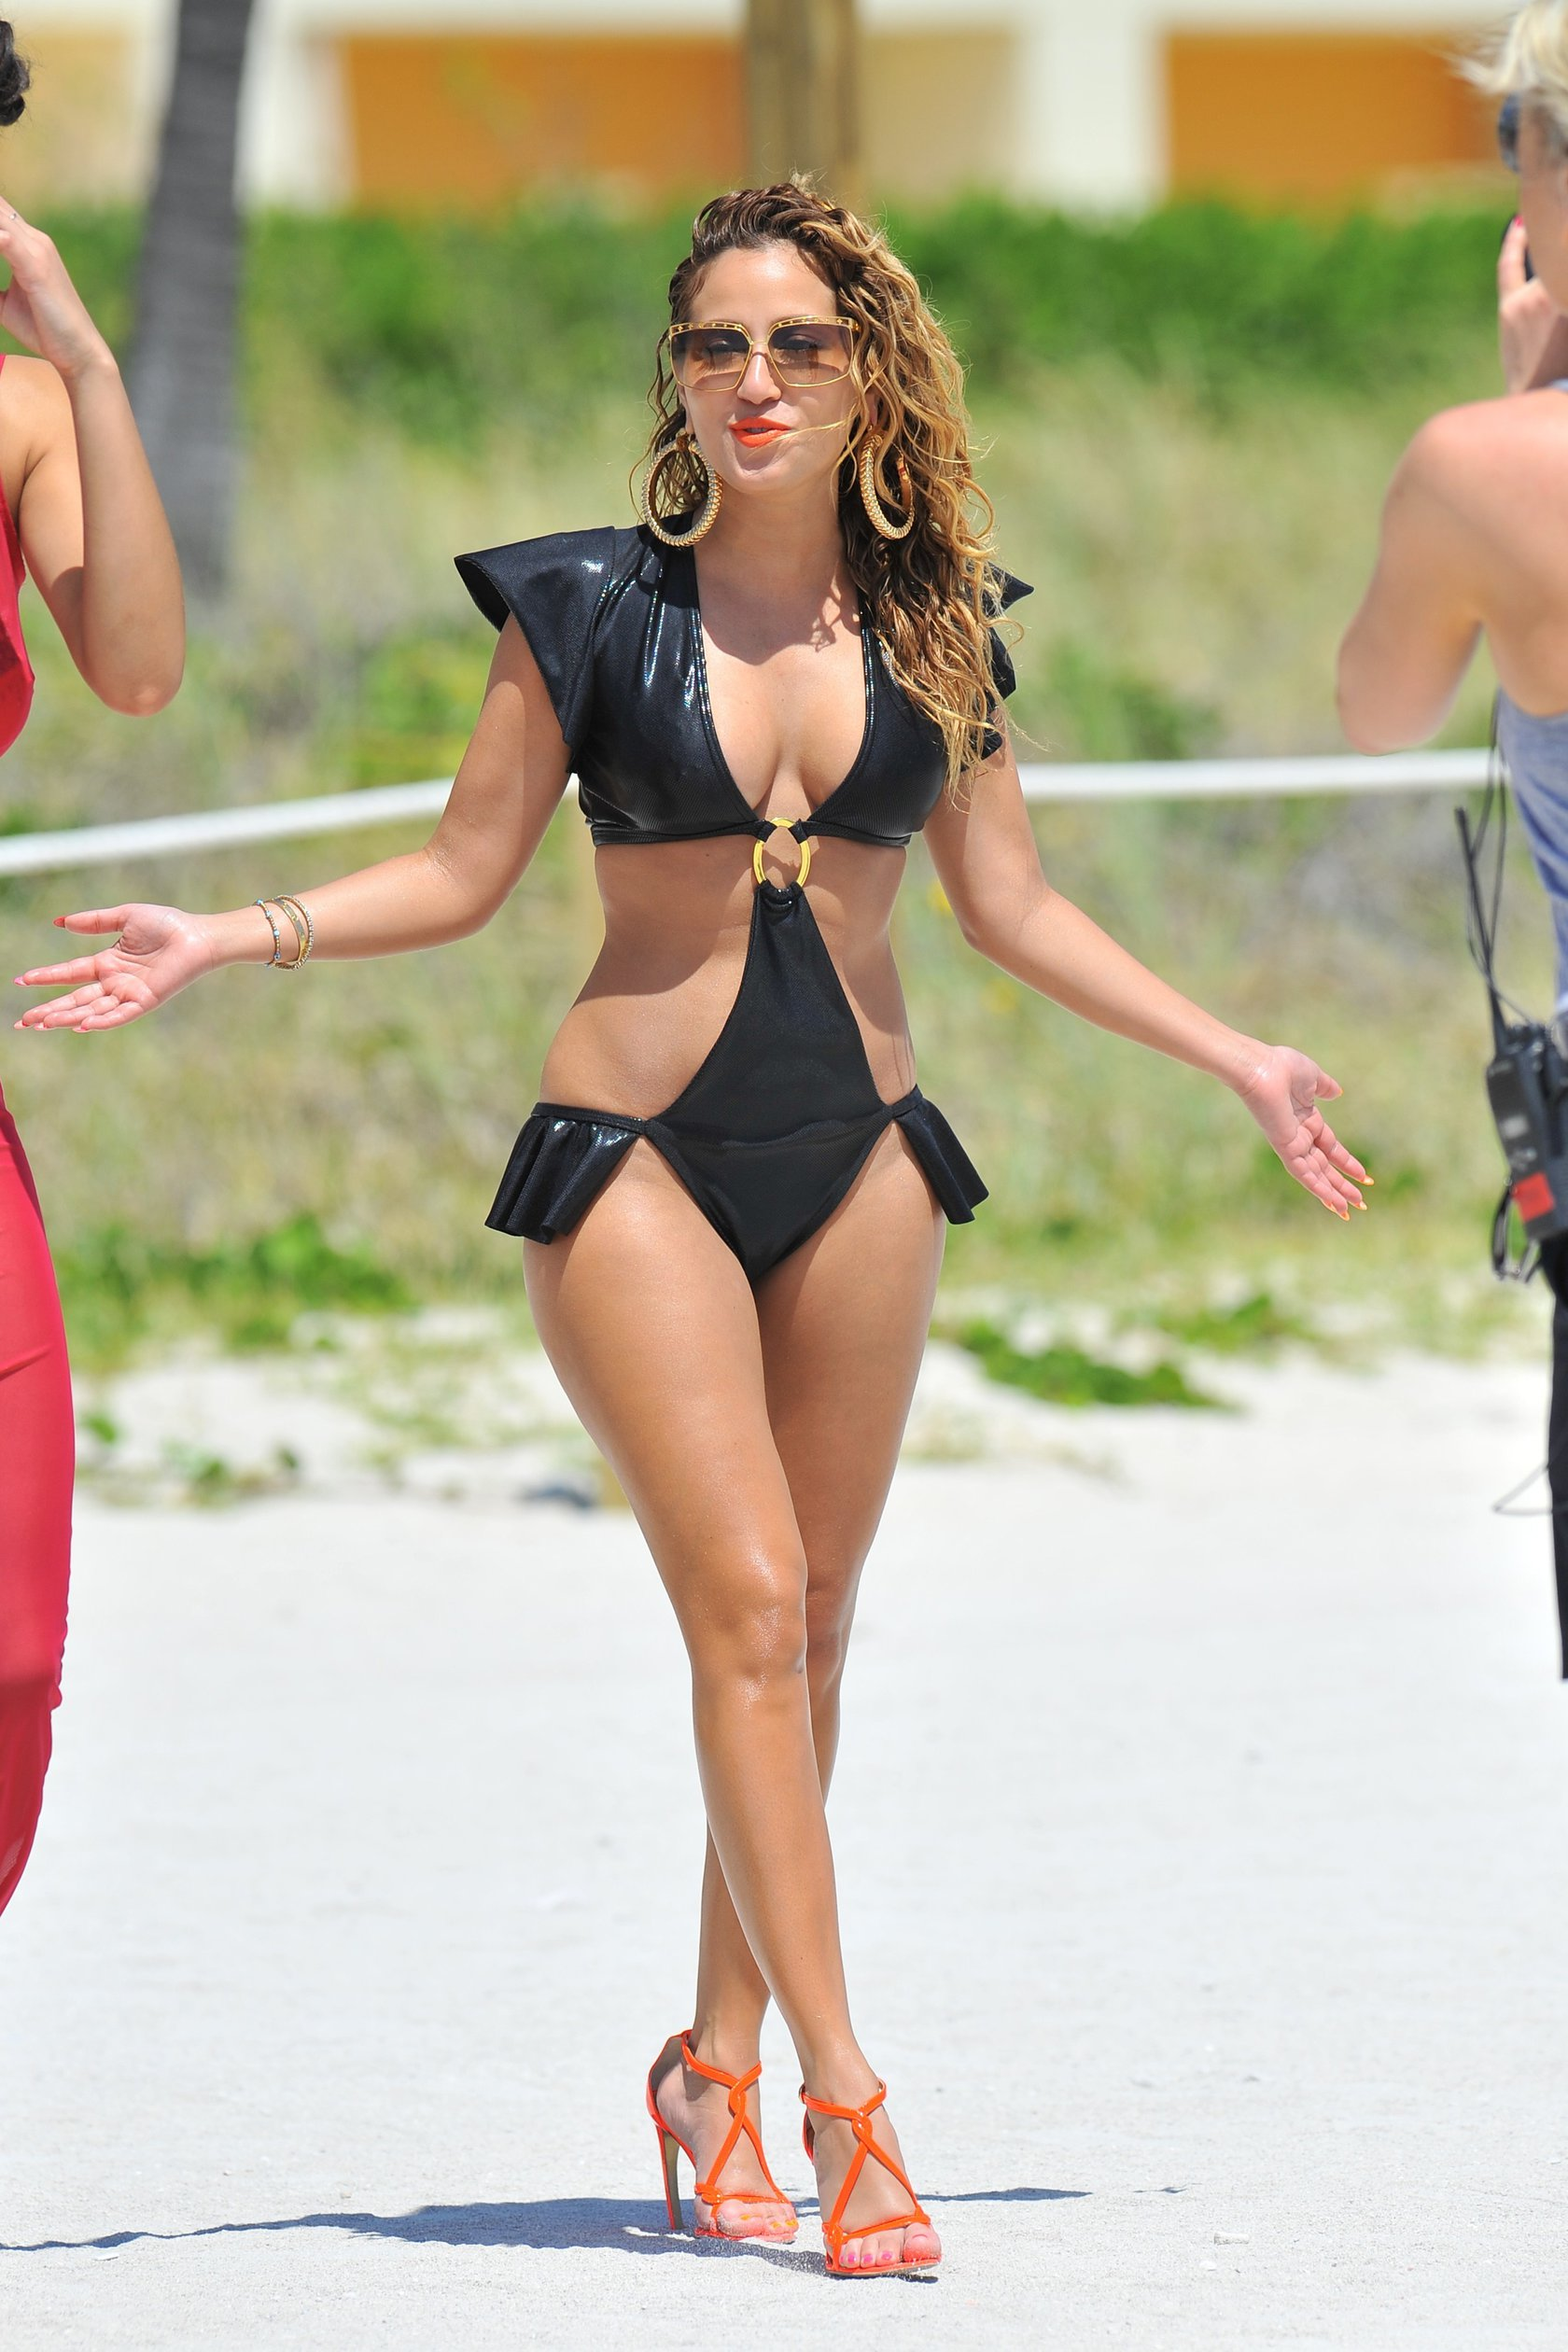 Adrienne Bailon filming scenes for Empire Girls in Miami on April 27, 2012